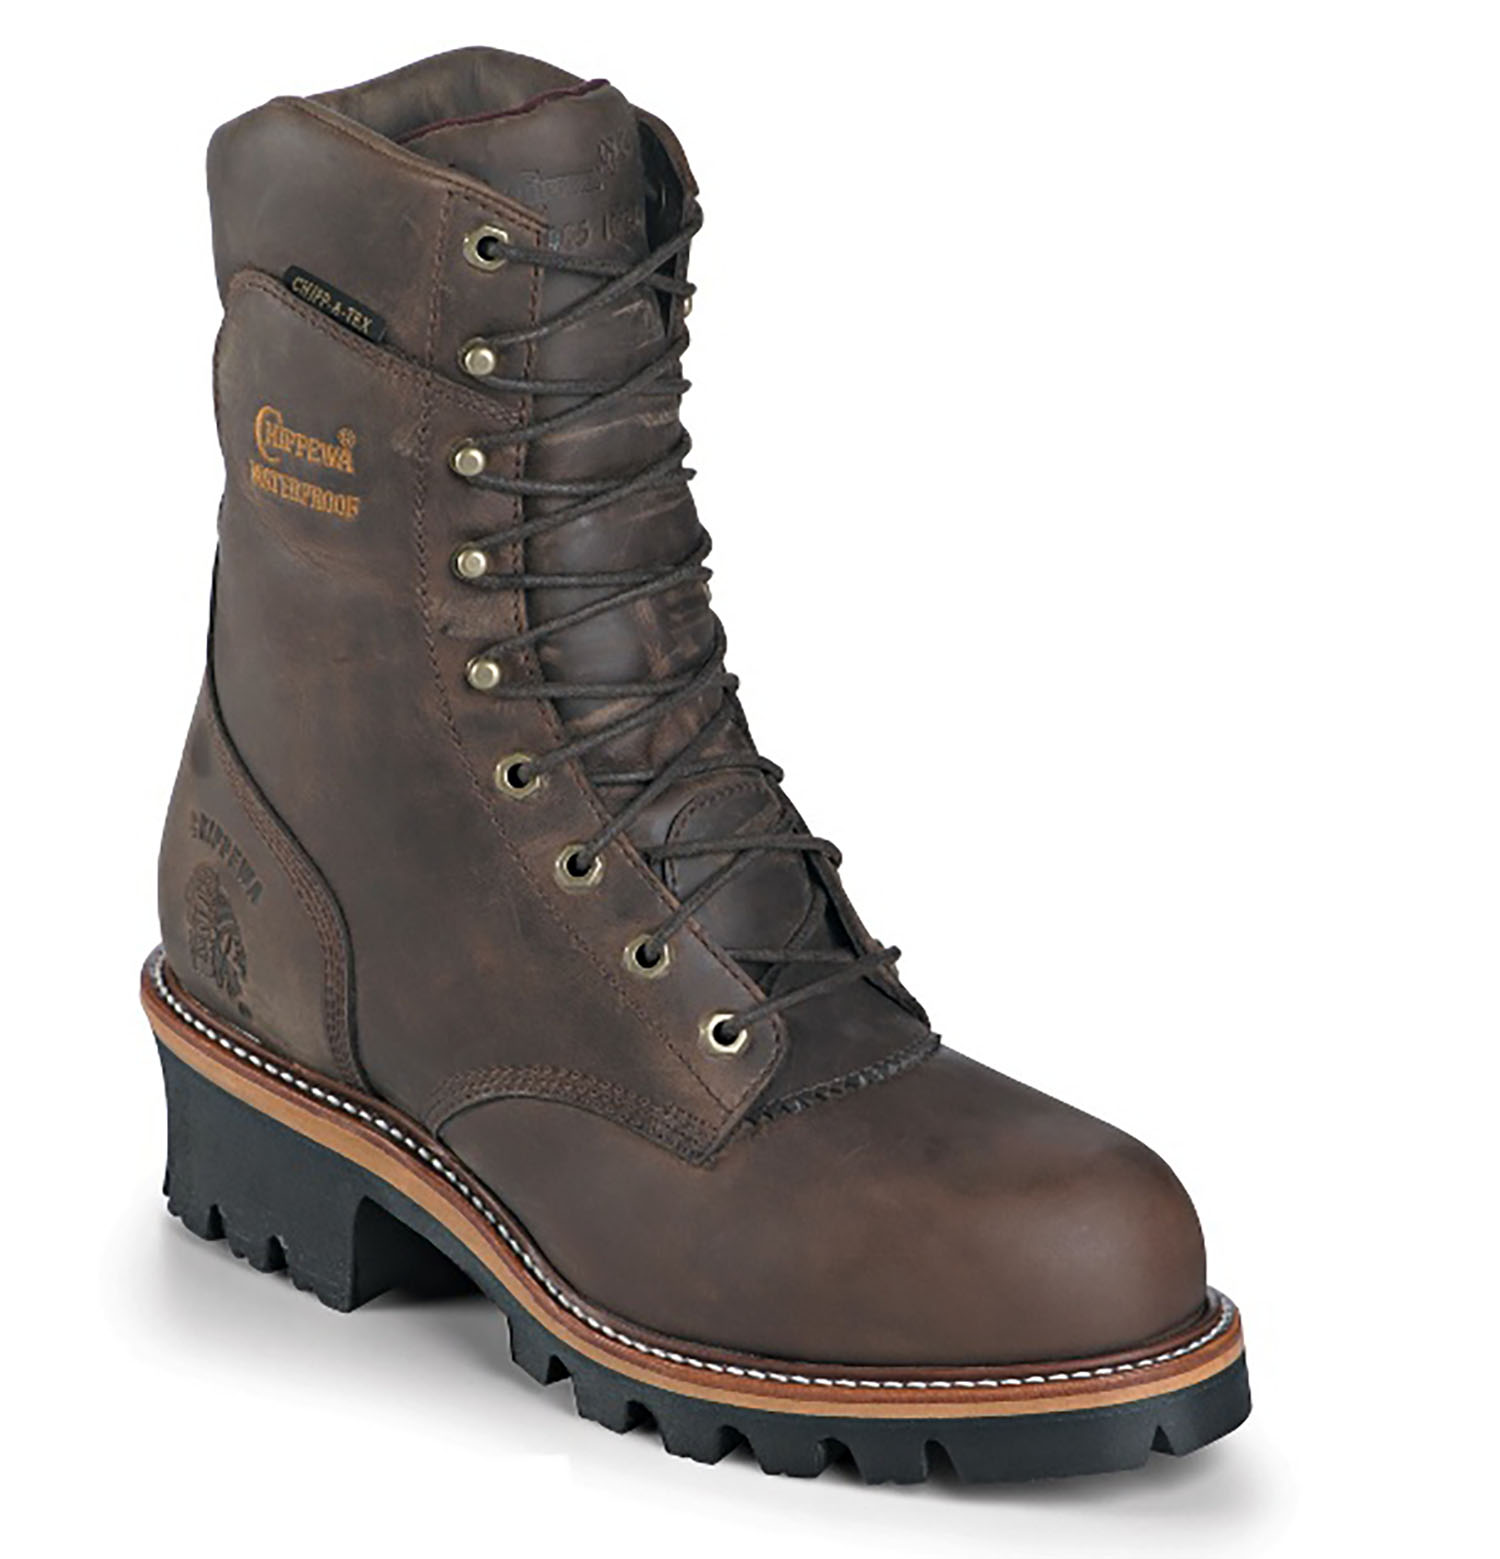 Chippewa 25405 Steel Toe Logger